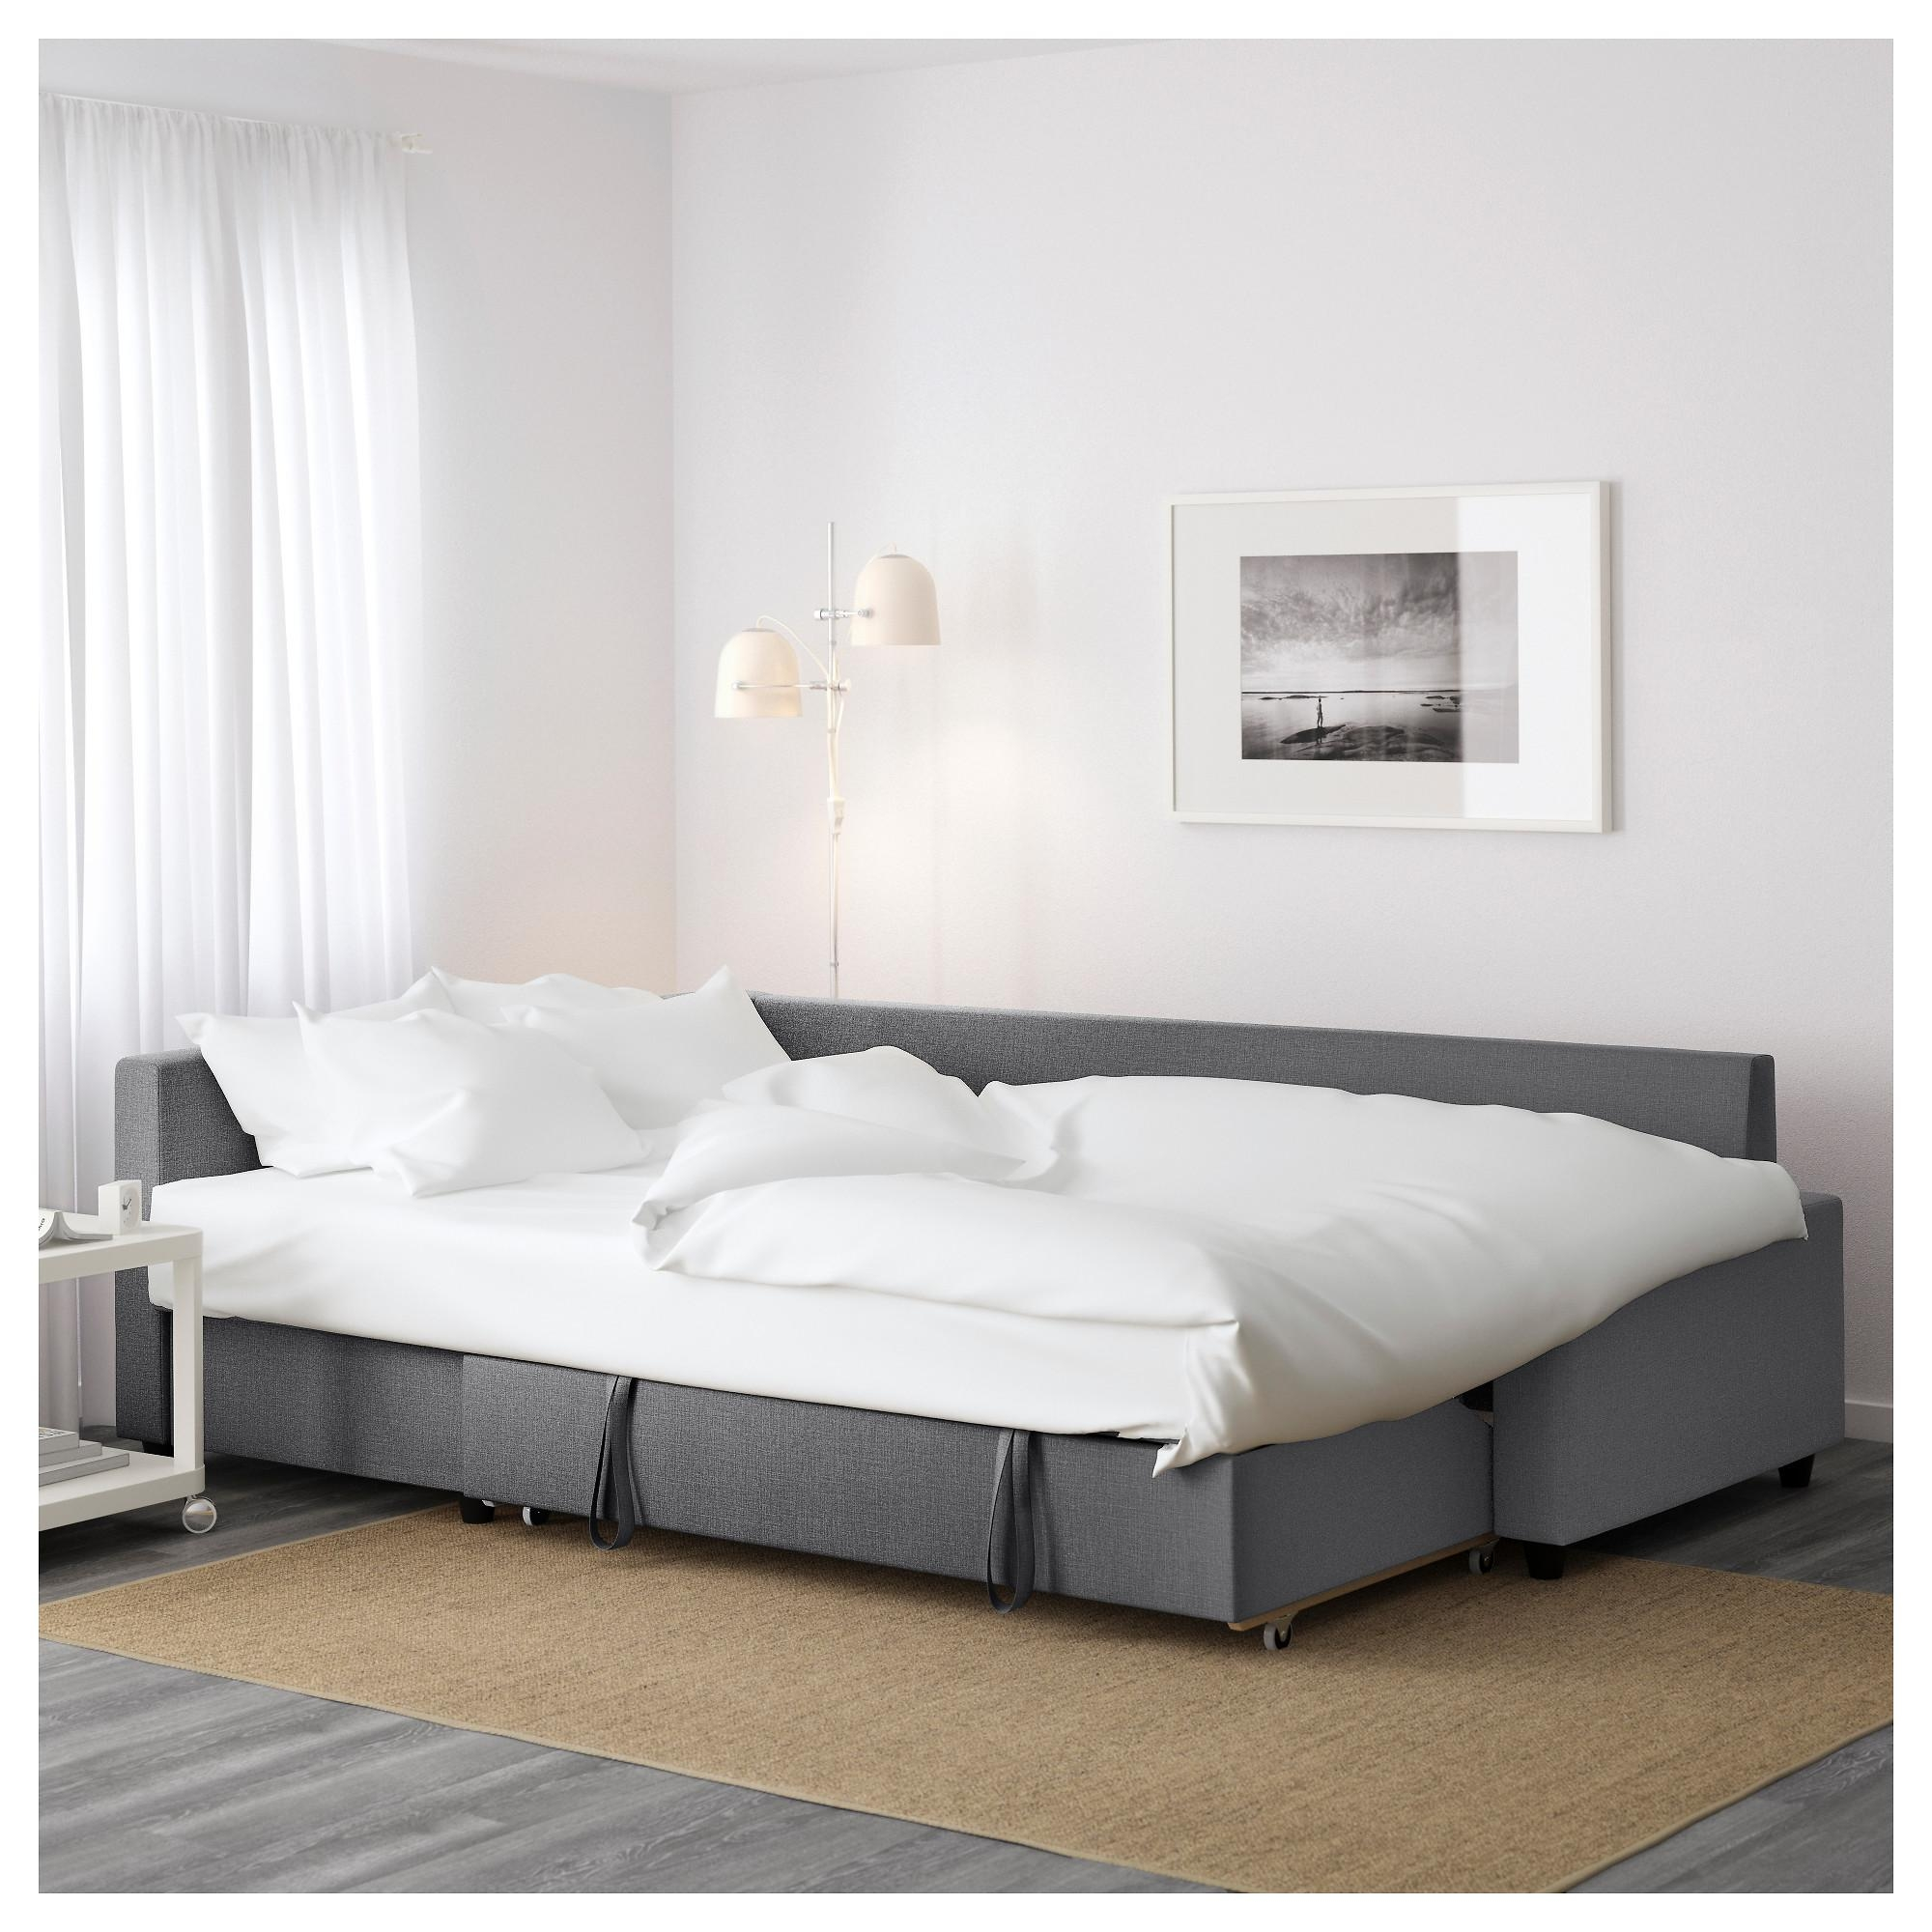 Furniture: Ikea Sofa Beds | Sofa With Pull Out Bed Ikea | Ikea For Sheets For Sofa Beds Mattress (Image 4 of 20)